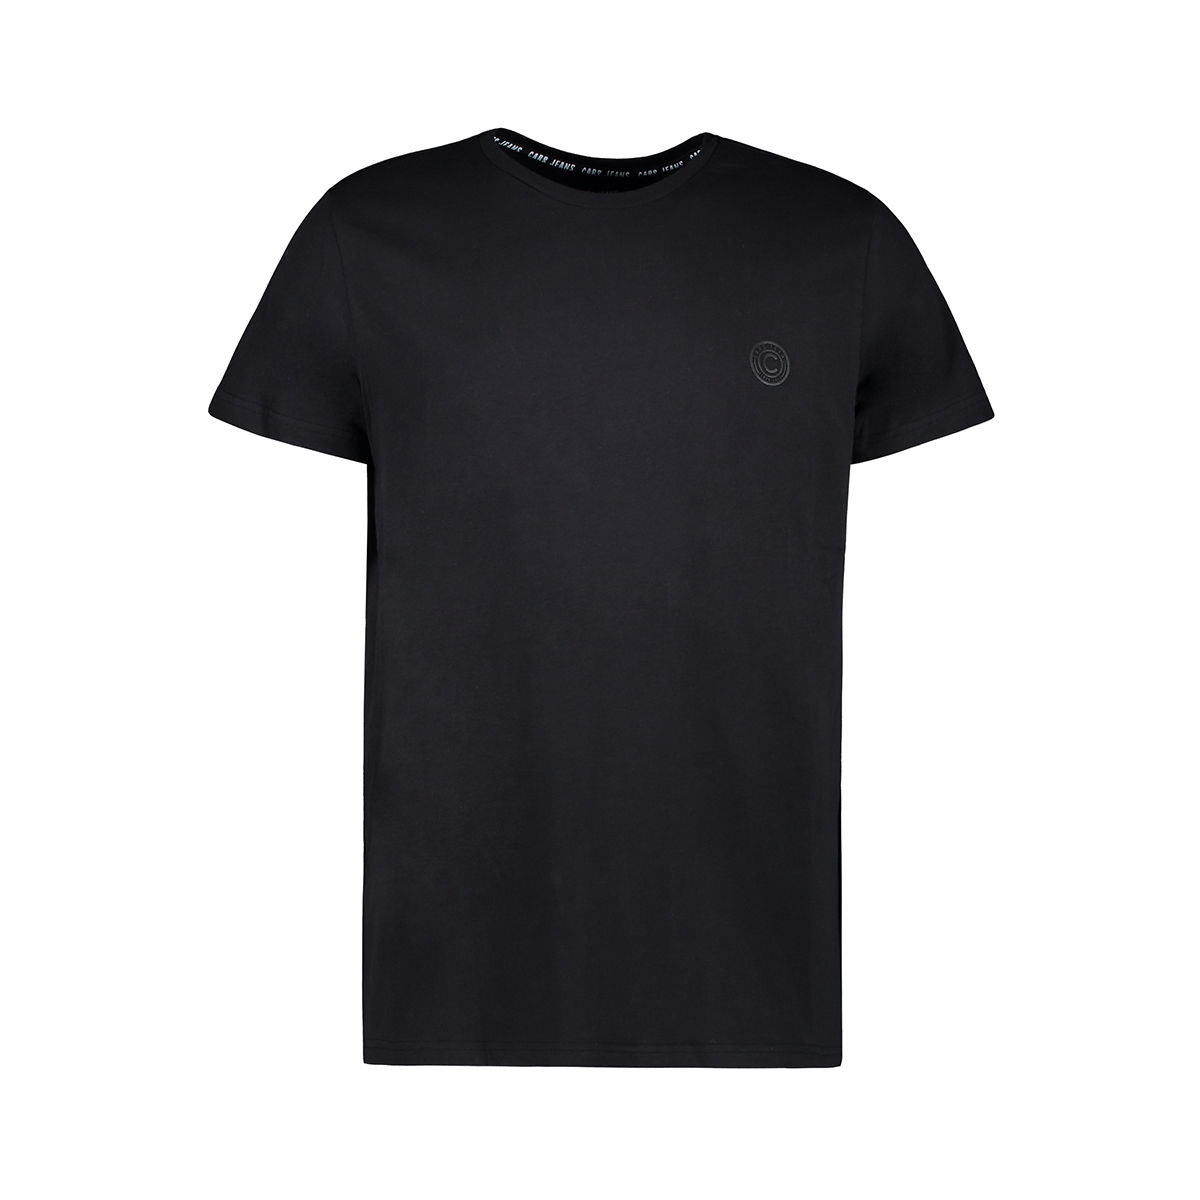 fulton ts 42012 cars t-shirt 01 black